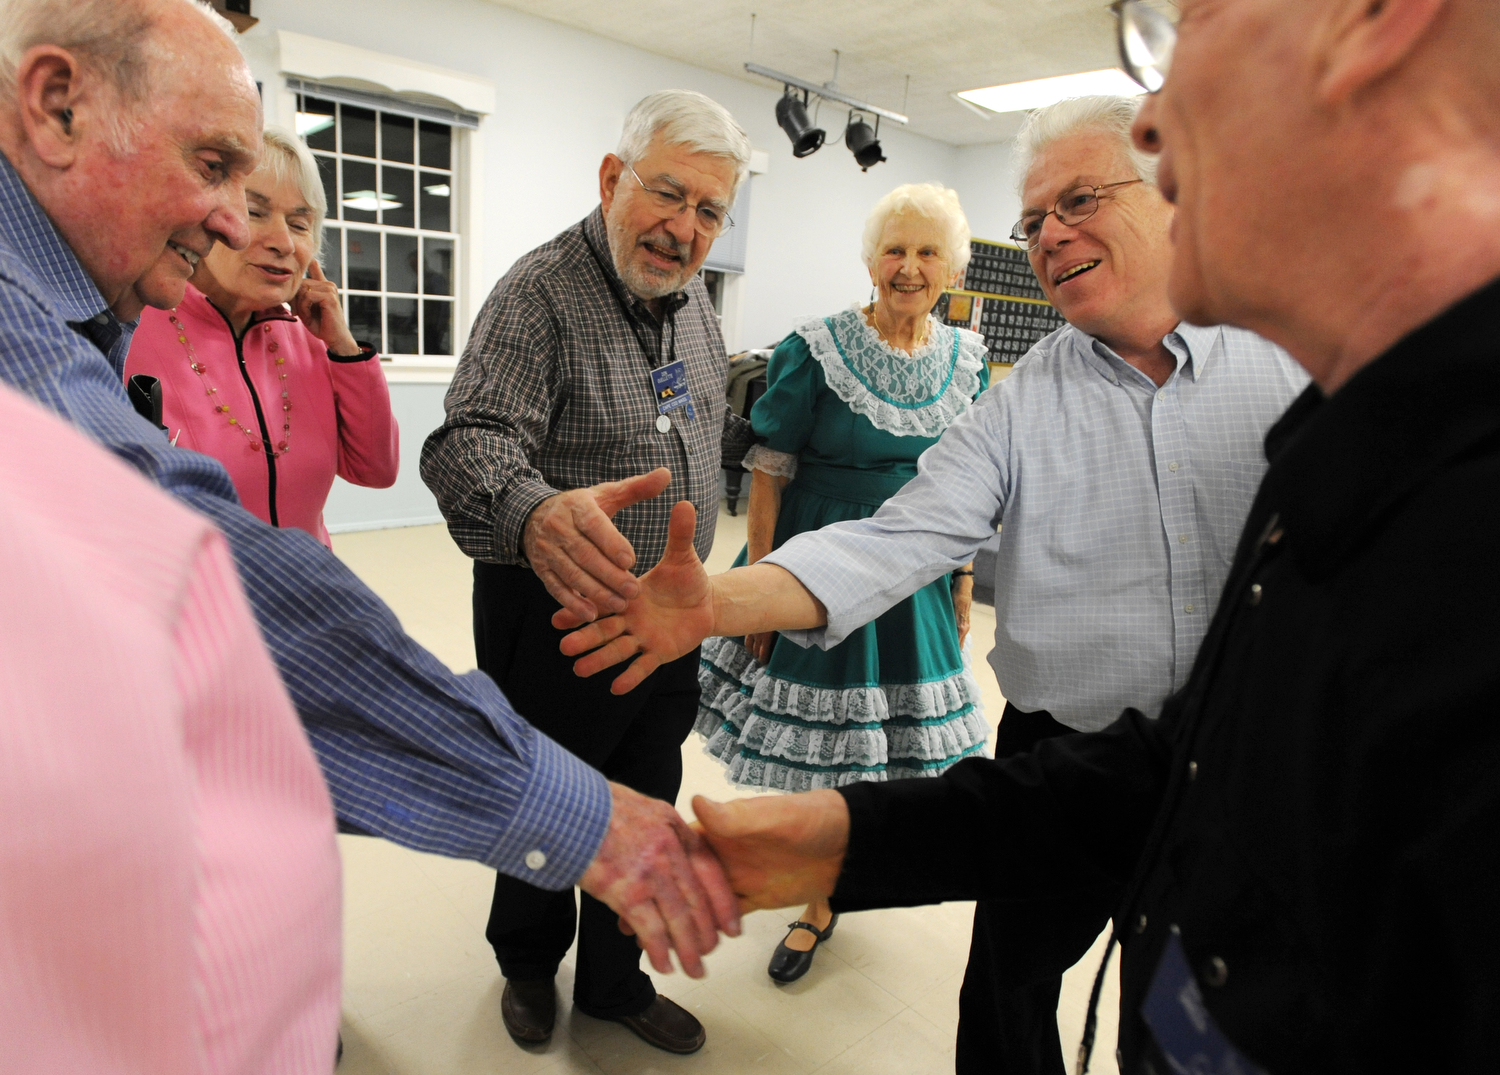 The last square of the night glad hands with each other when the last call is done. Square Dance etiquette is very important to the members. A dancer is not supposed to talk while in a square because it can be distracting for others and it also isn't courteous to leave a square once you have joined. It is also customary to thank everyone in the square after each tip, which is the sequence of calls that makes up a dance to one song.